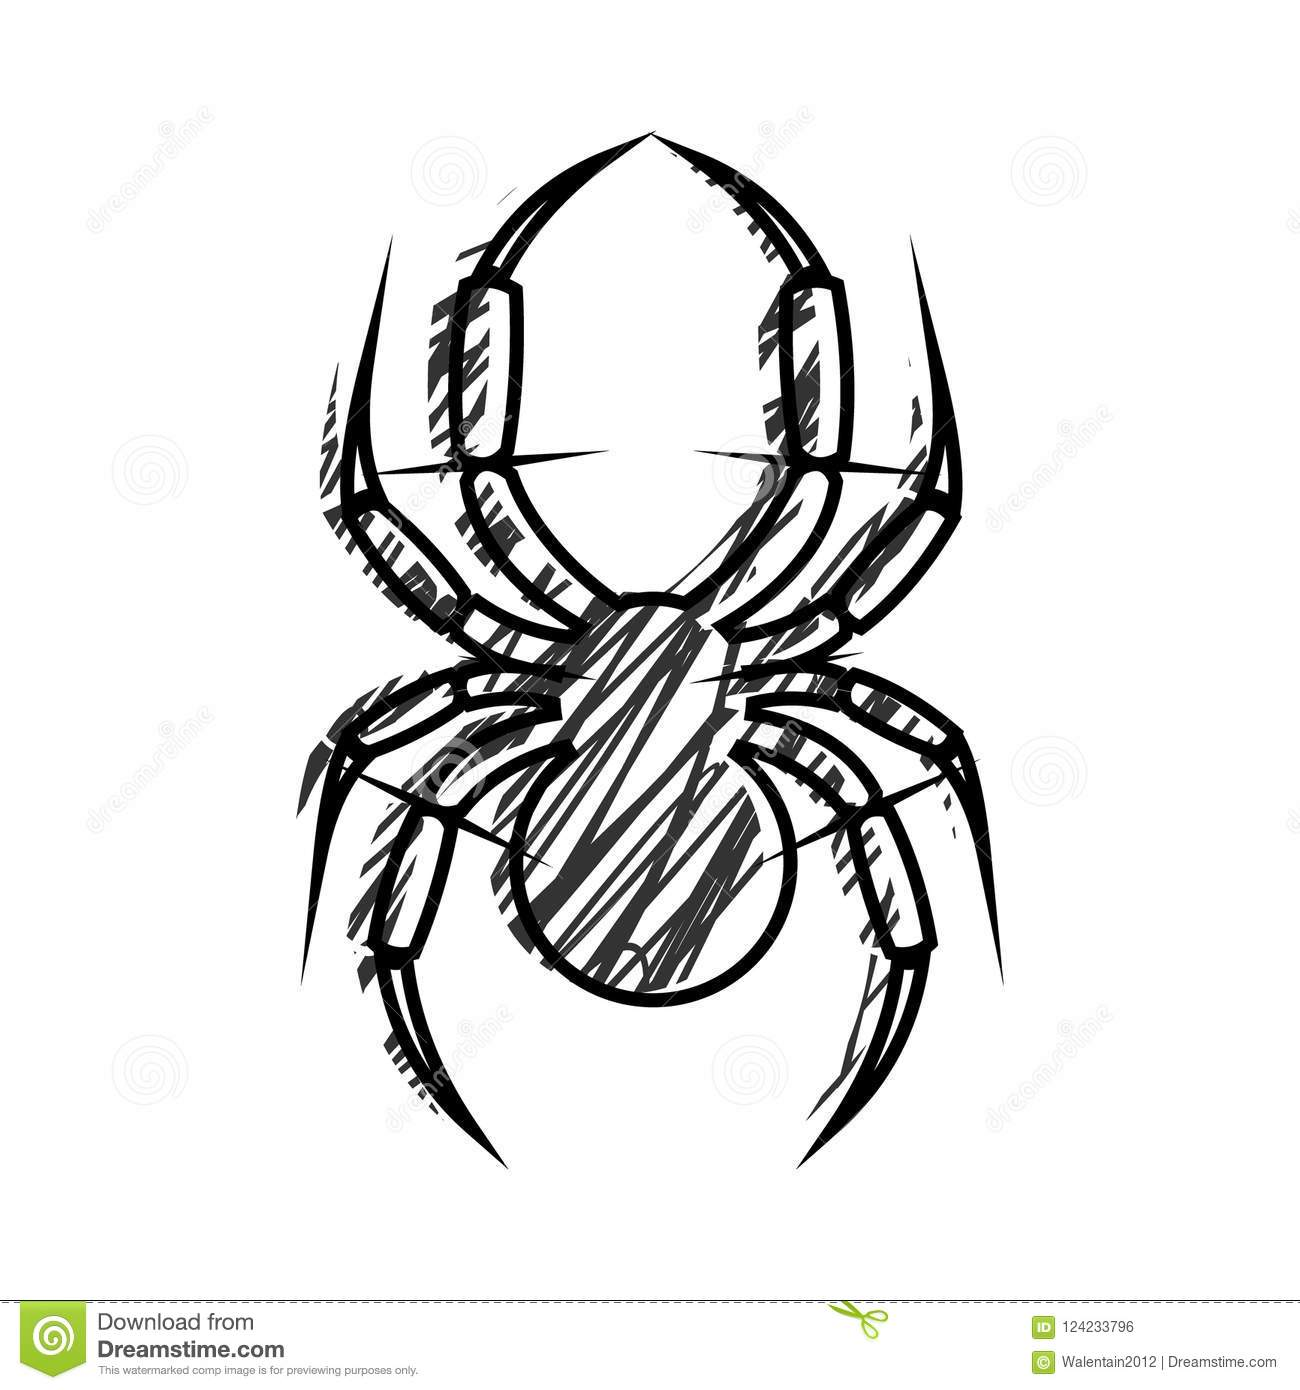 Graphic Vector Illustration Of Insect Black And White Hand Draw